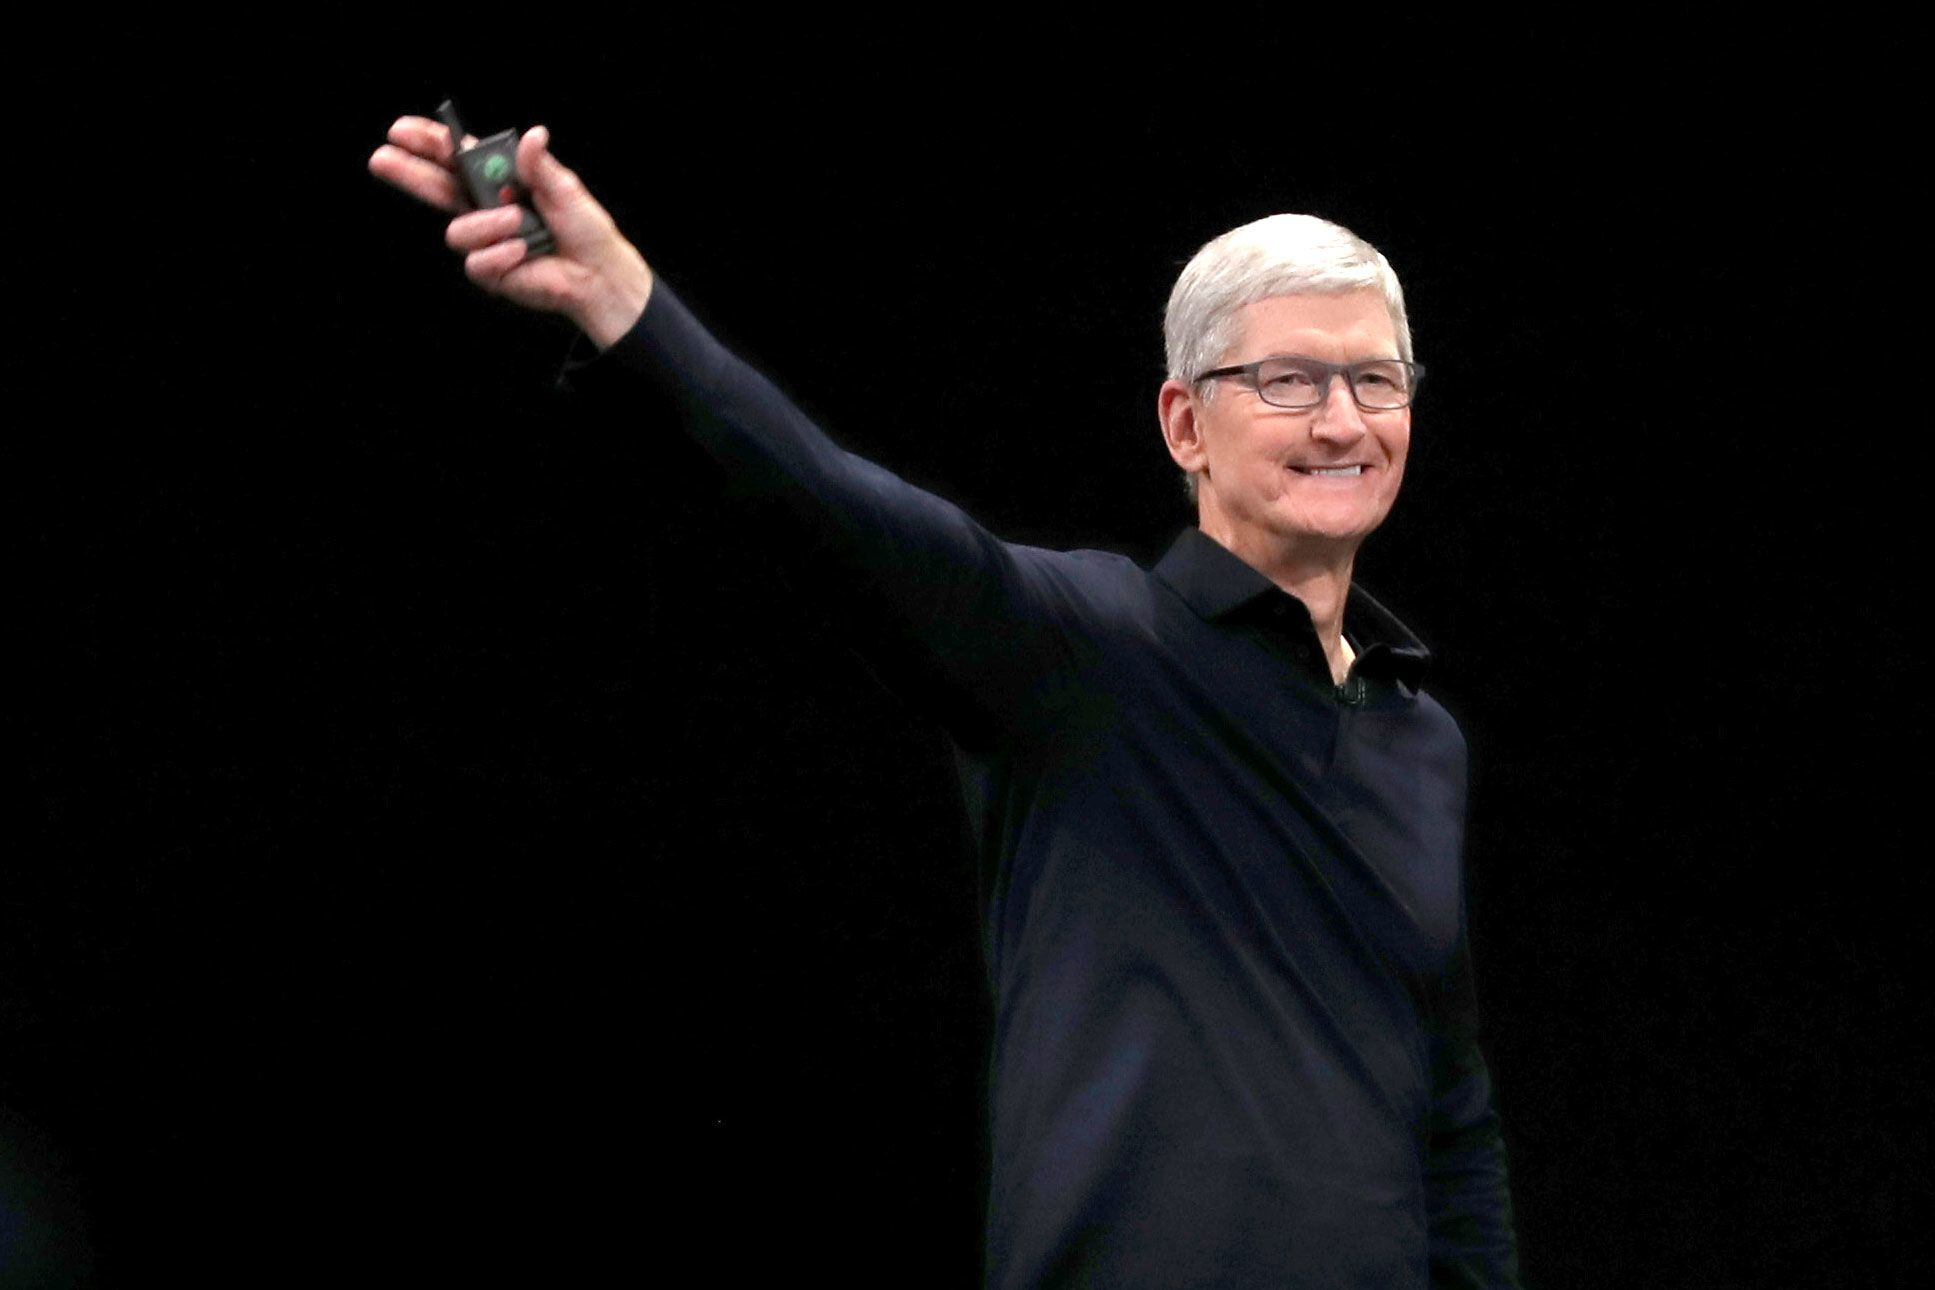 Apple R&D spend increases, fulfilling 'Tim Cook doctrine'